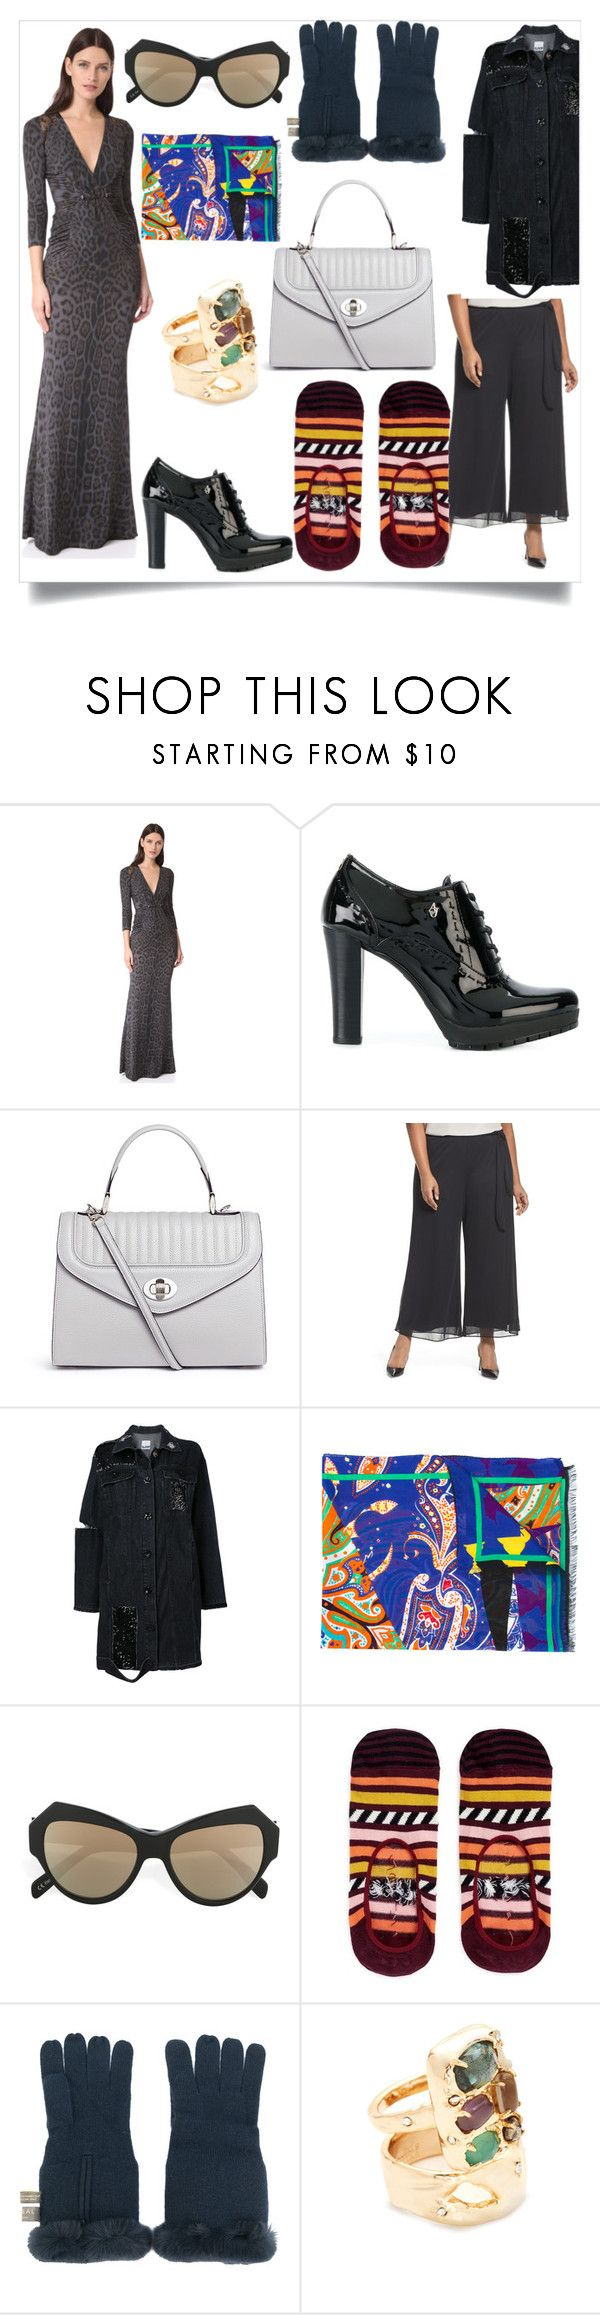 """""""Travel with comfort fashion"""" by gloriaruth-807 ❤ liked on Polyvore featuring Roberto Cavalli, Armani Jeans, Delage, Alex Evenings, SJYP, Etro, Zanzan, Happy Socks, N.Peal and Alexis Bittar"""